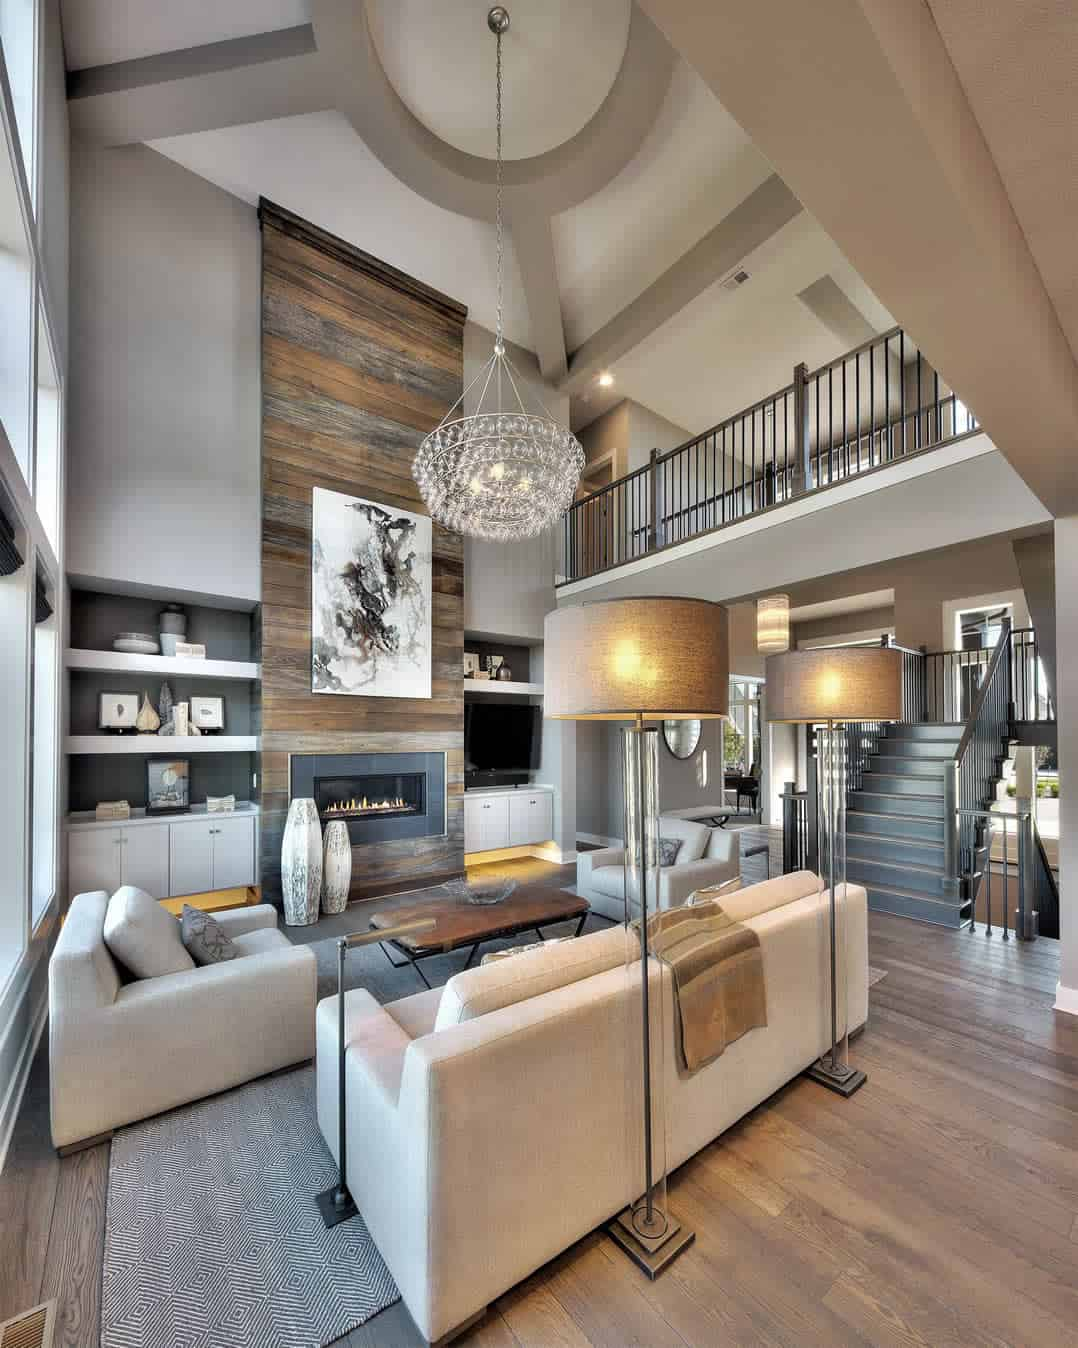 Hollywood Home Living Room Decor Styles Luxurious Design Ideas For Homes  Clear Glass Chandelier Design Ideas For Homes Home Design Astonishing  Design Ideas ...